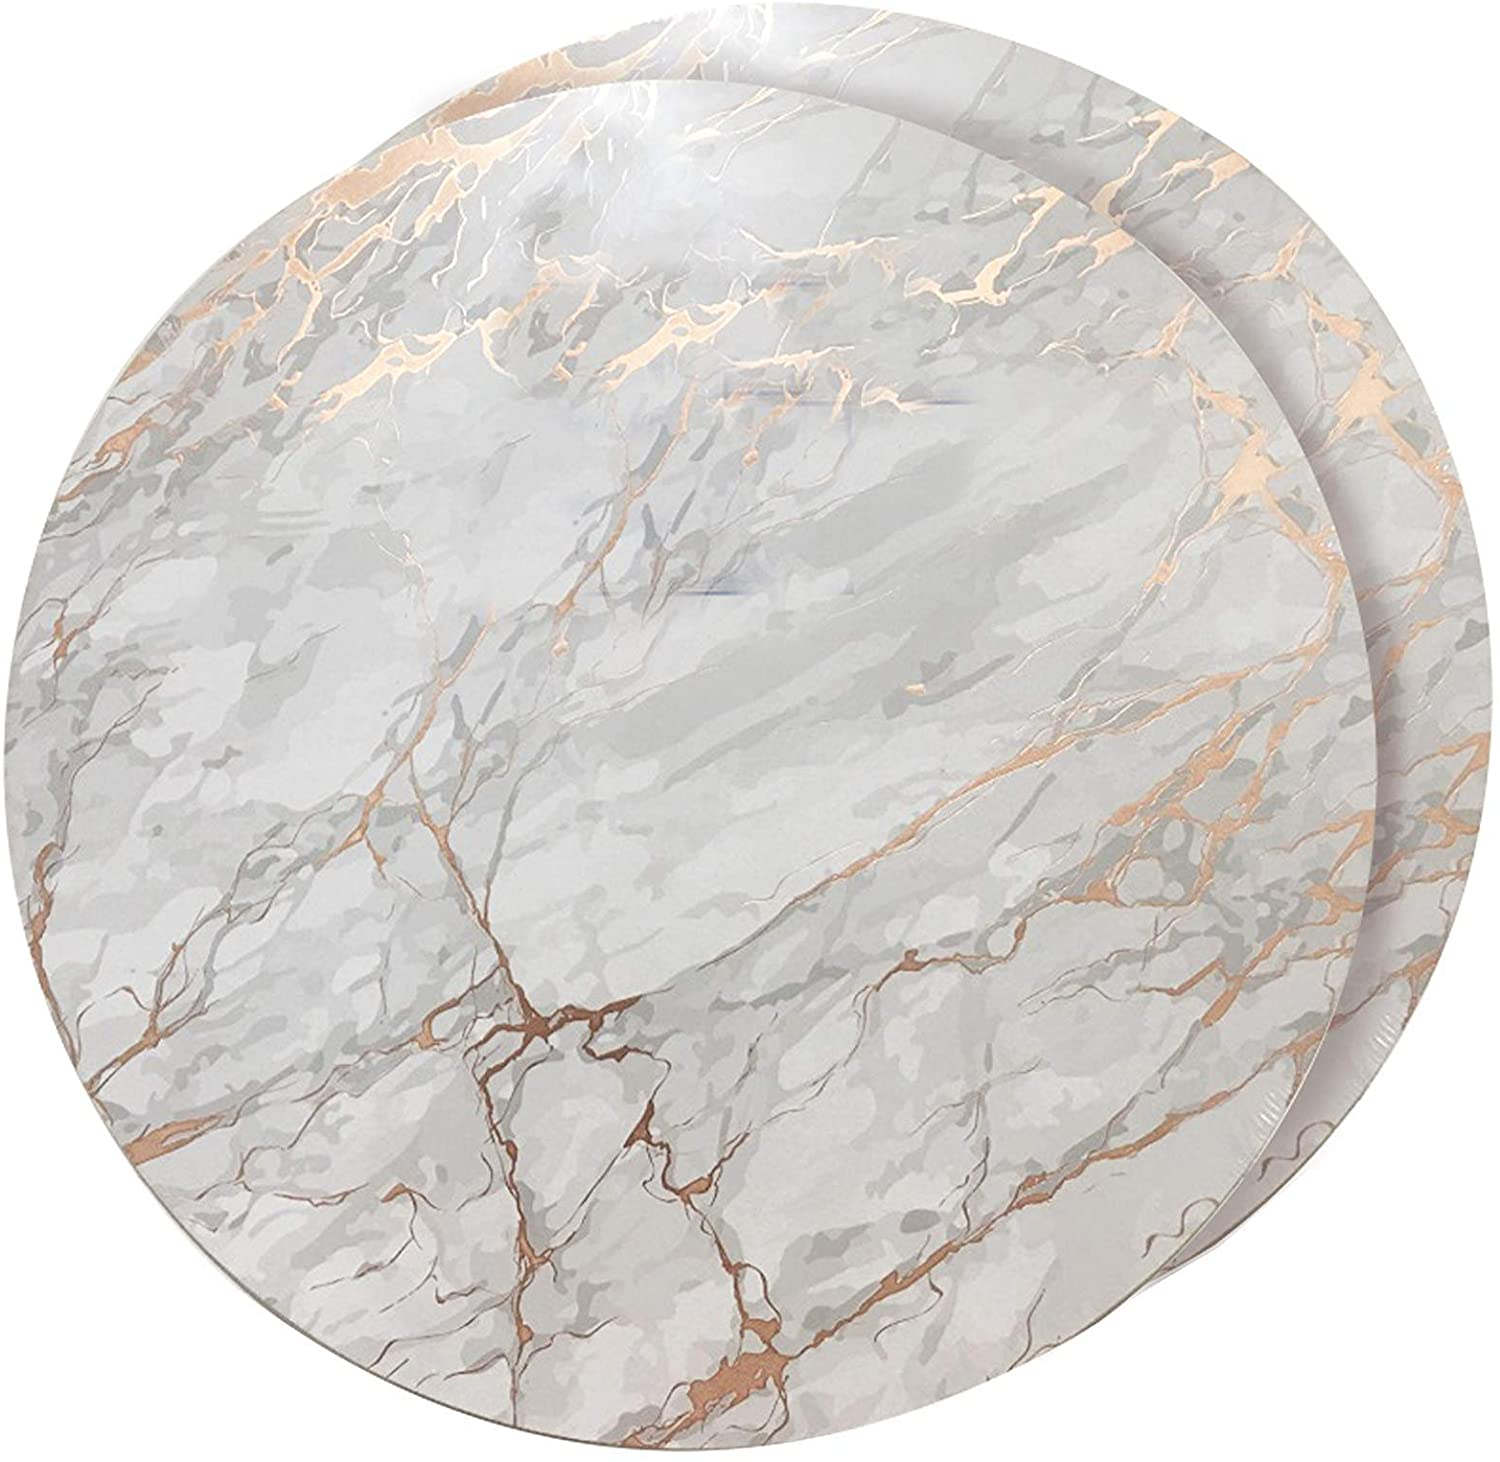 Dainty Home Foiled Granite Thick Cork Heat Resistant Dining Table Placemats Set Of 2 15 Round Marbled Rose Gold 2mc15rgo Home Kitchen